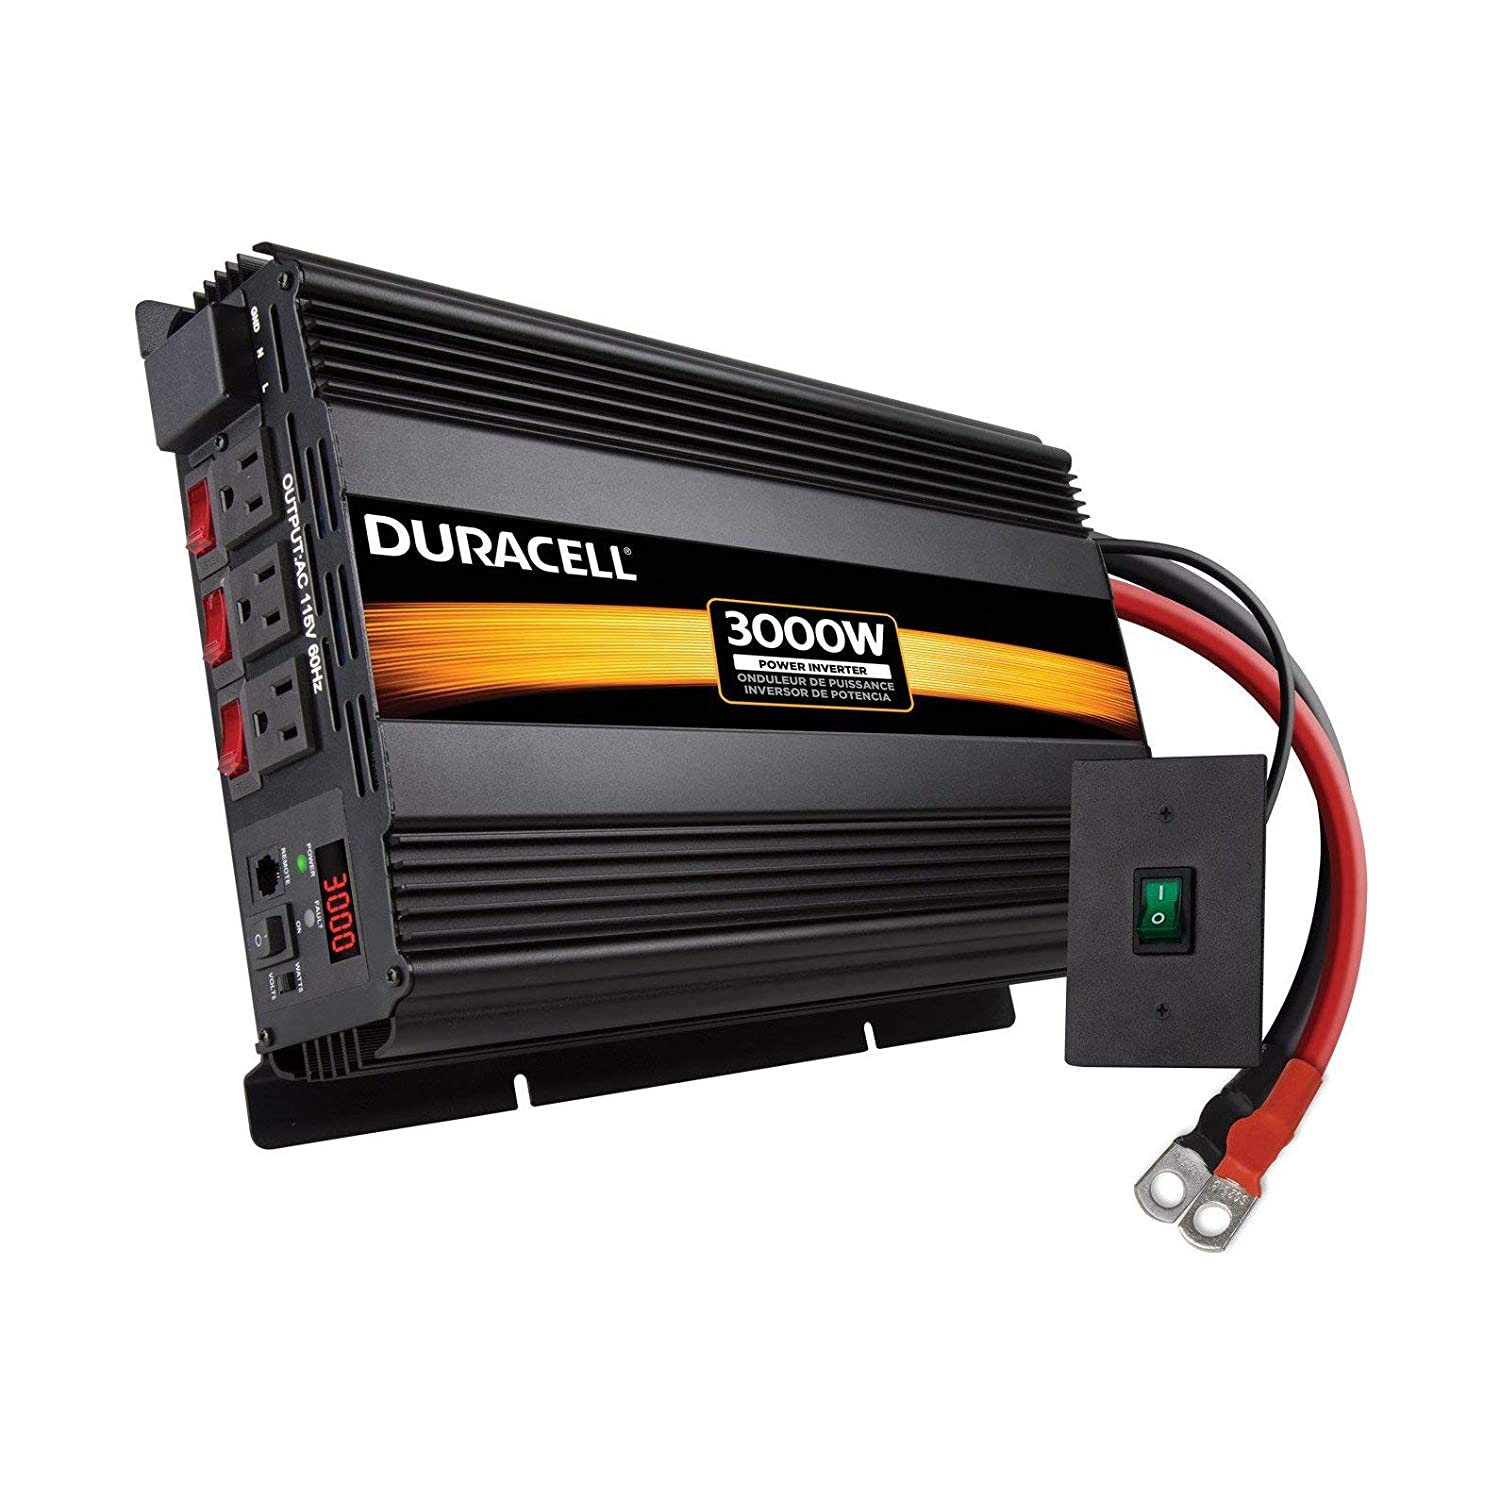 Duracell Power DRINV3000 Black 3000 W High Powered Inverter Renewed